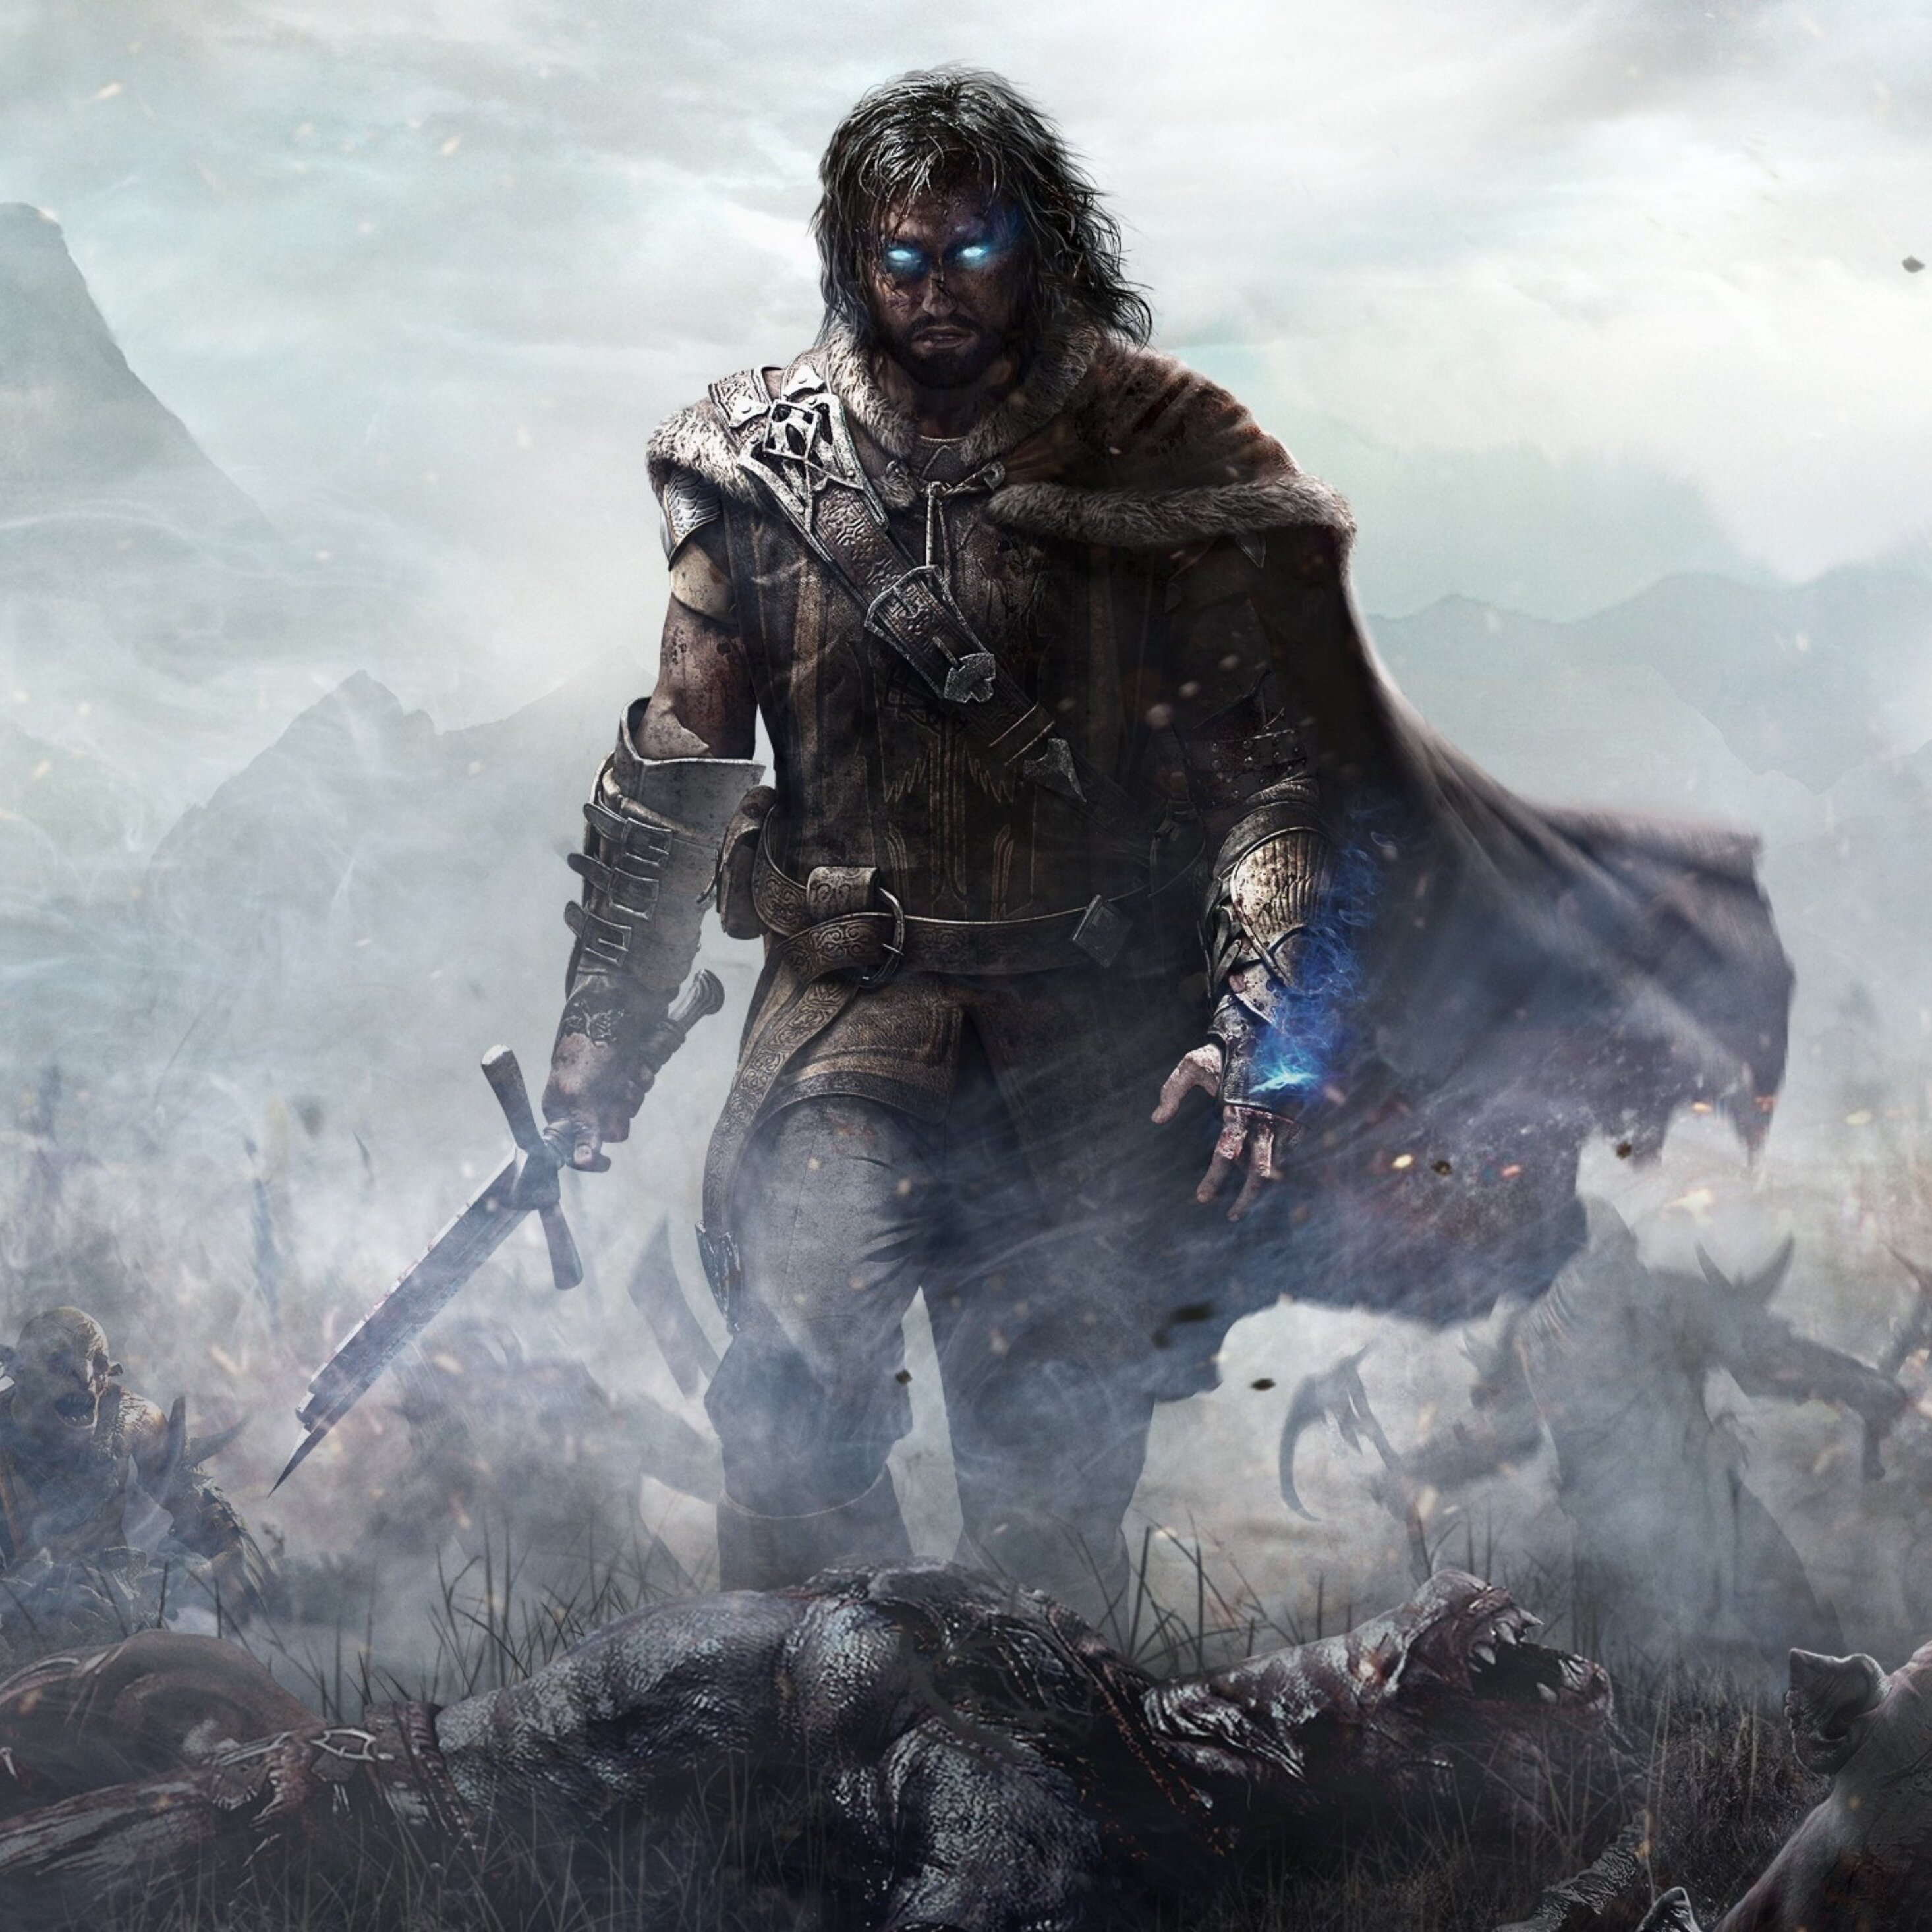 Download Wallpaper 3840x2400 Middle-earth shadow of mordor, The ...